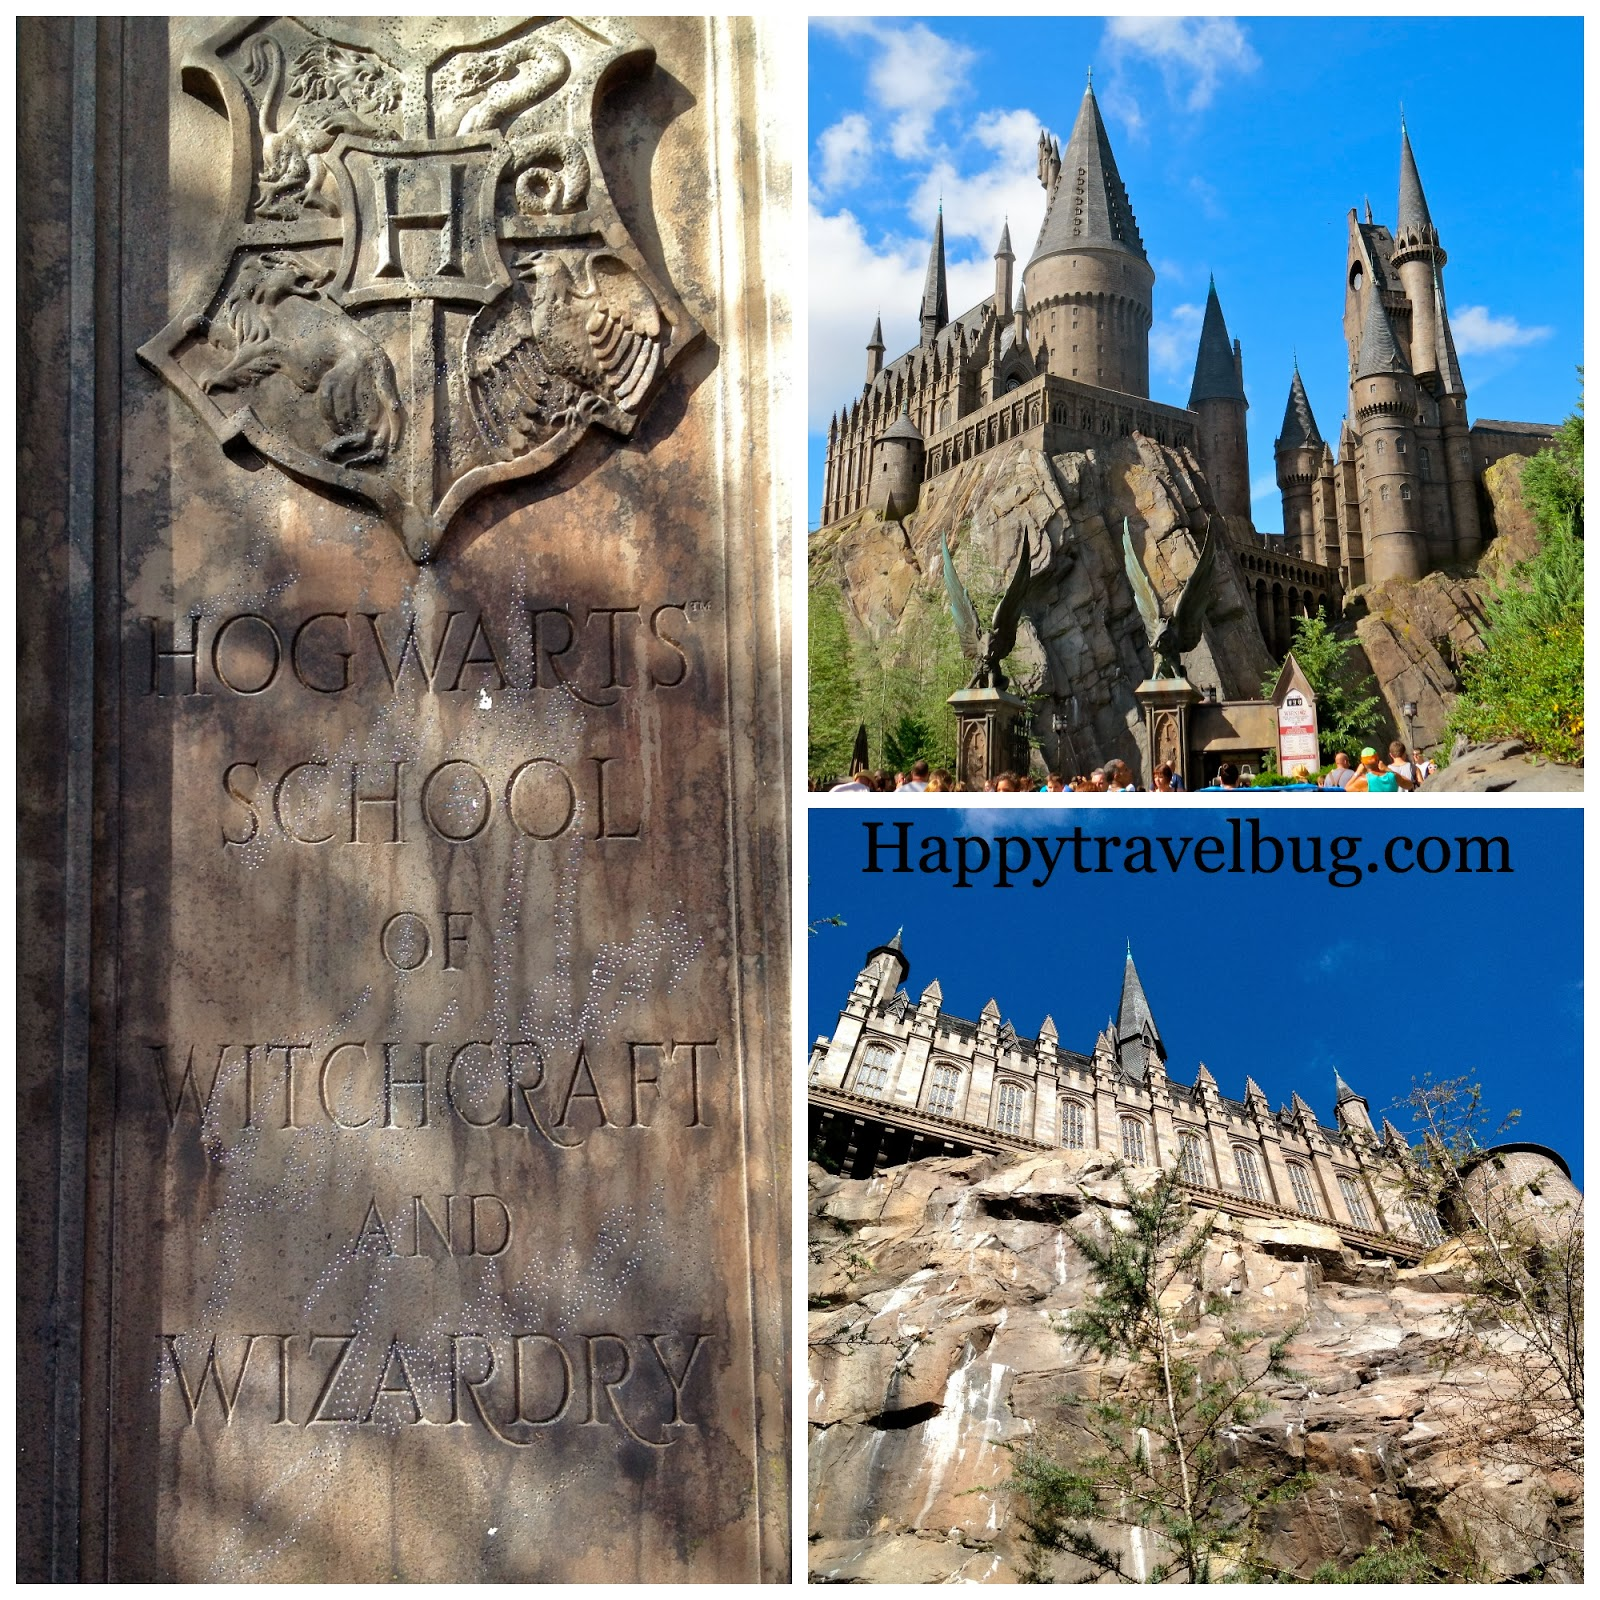 Hogwarts and Harry Potter at Universal Orlando